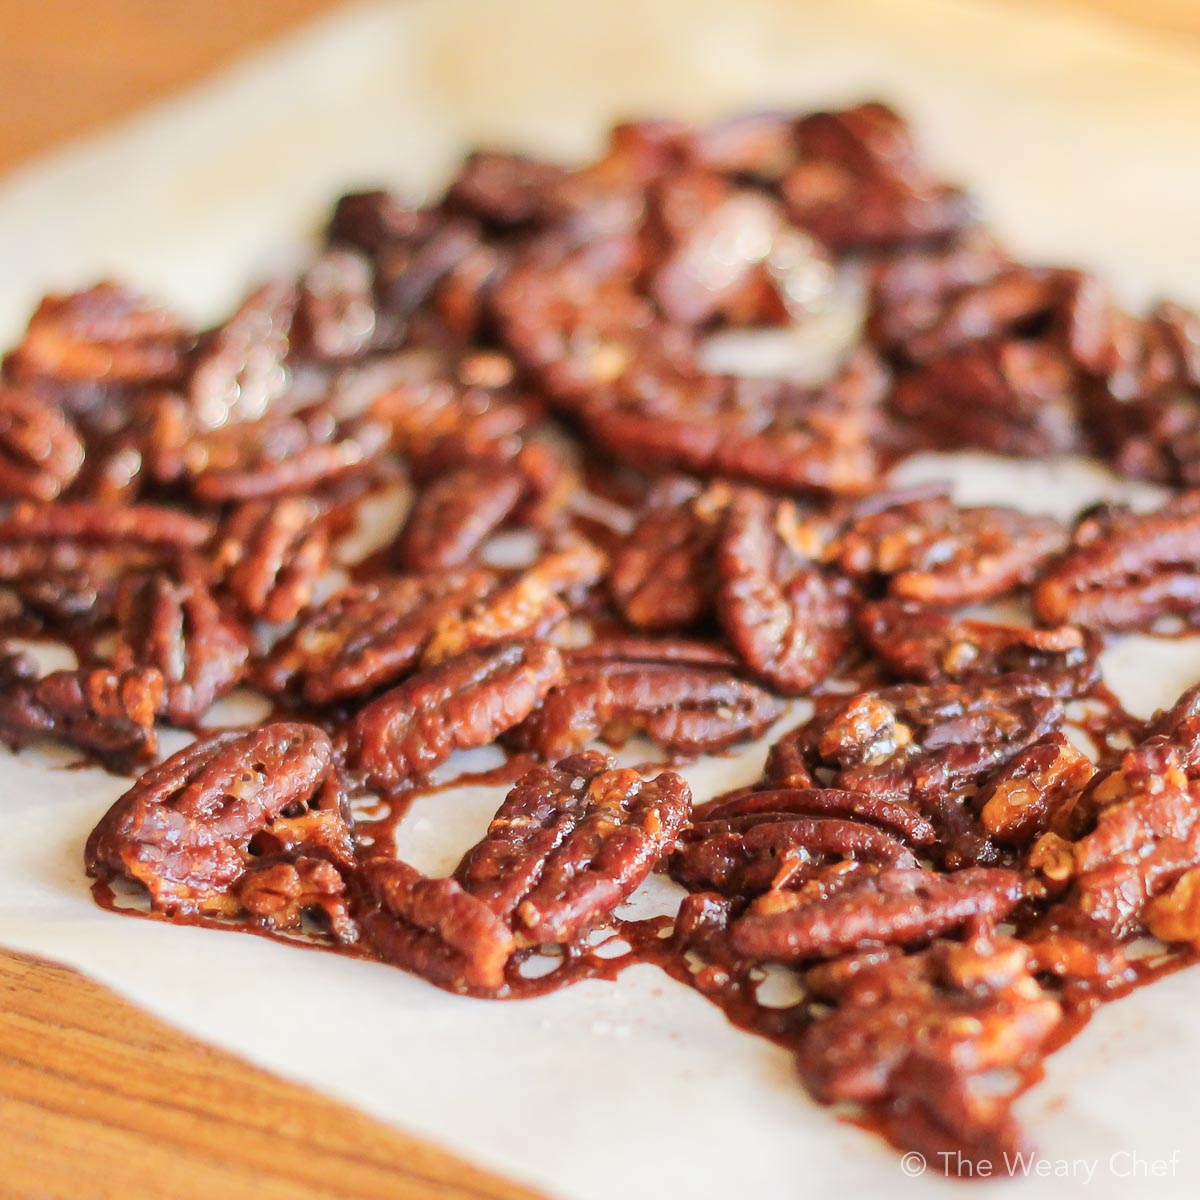 Easy glazed pecans make a great homemade gift!